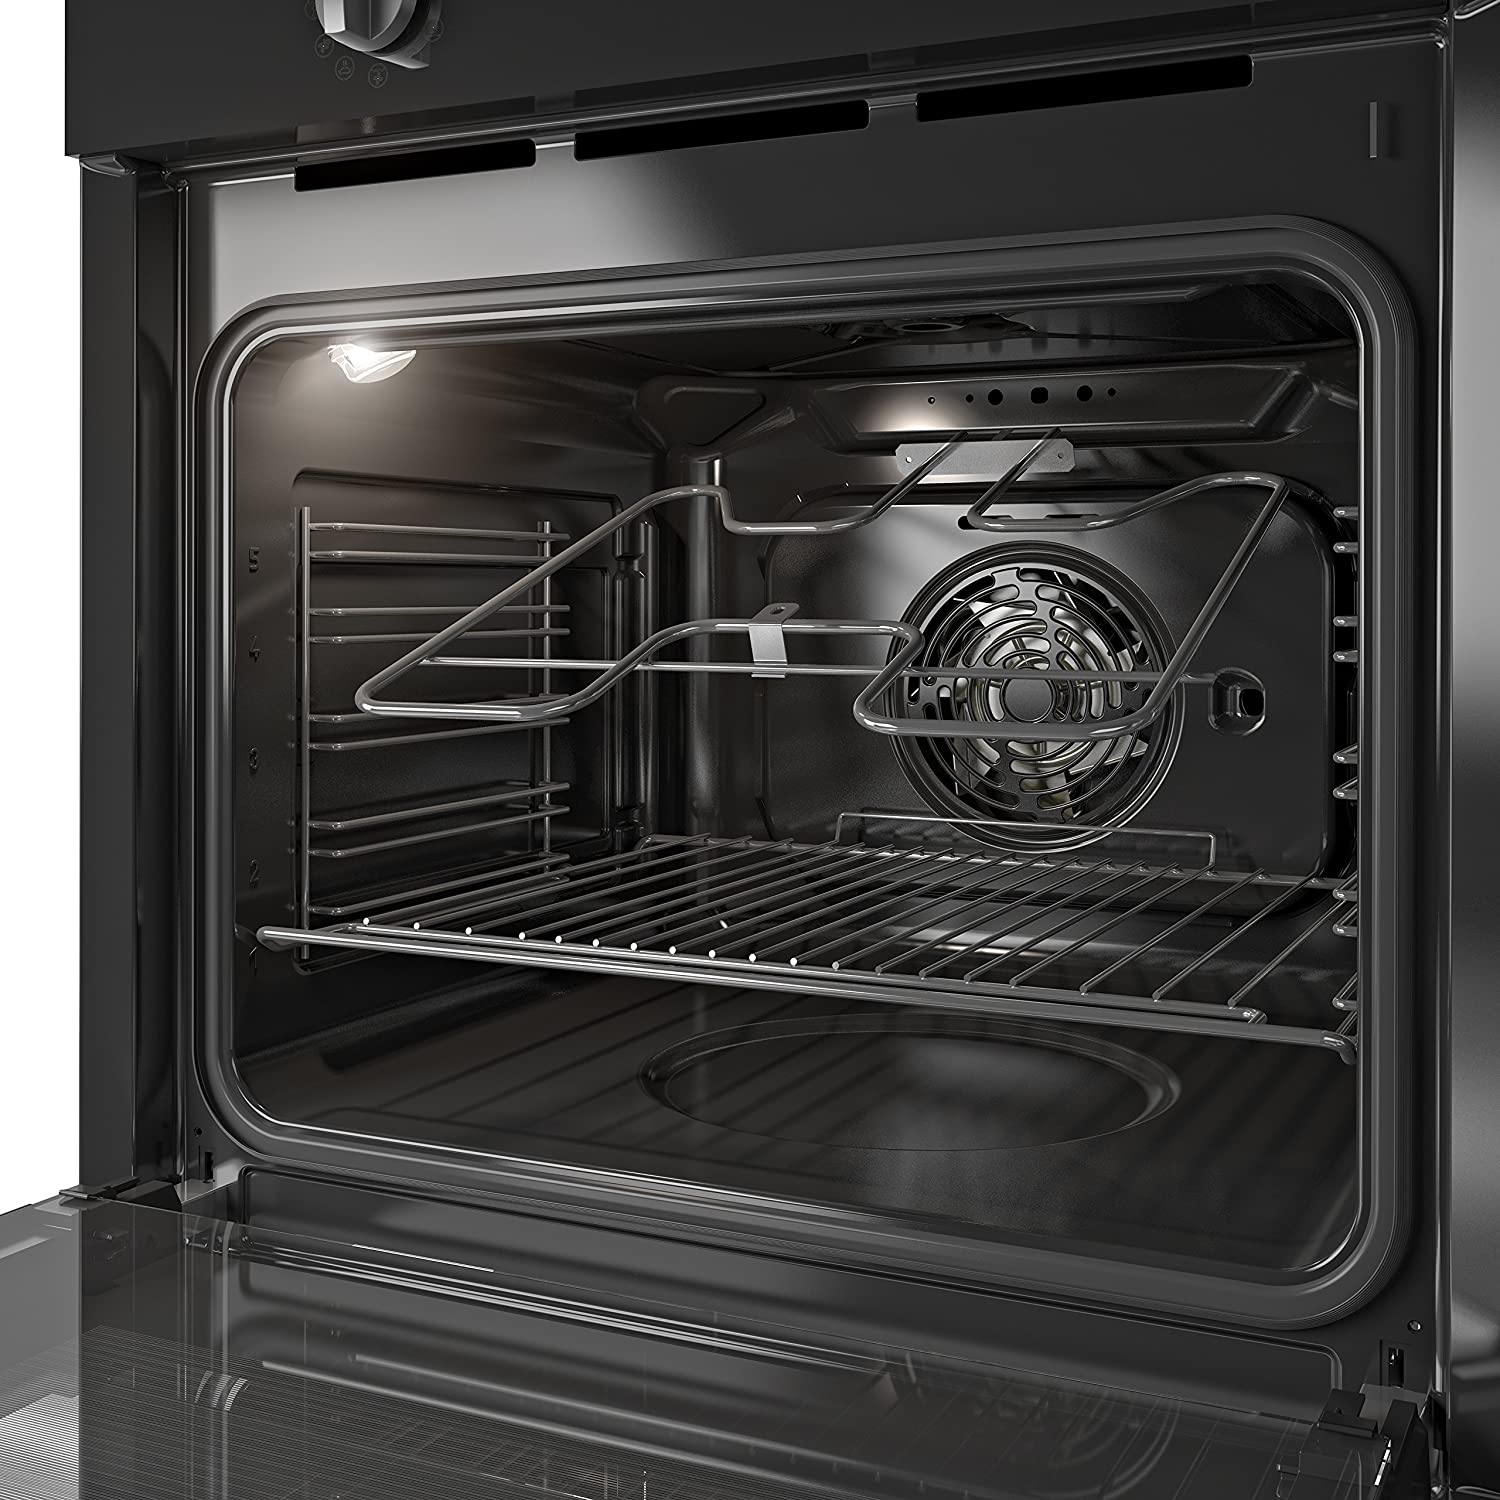 Indesit IFW6330BL Four Function Electric Built-in Single Oven Black [Energy Class A]